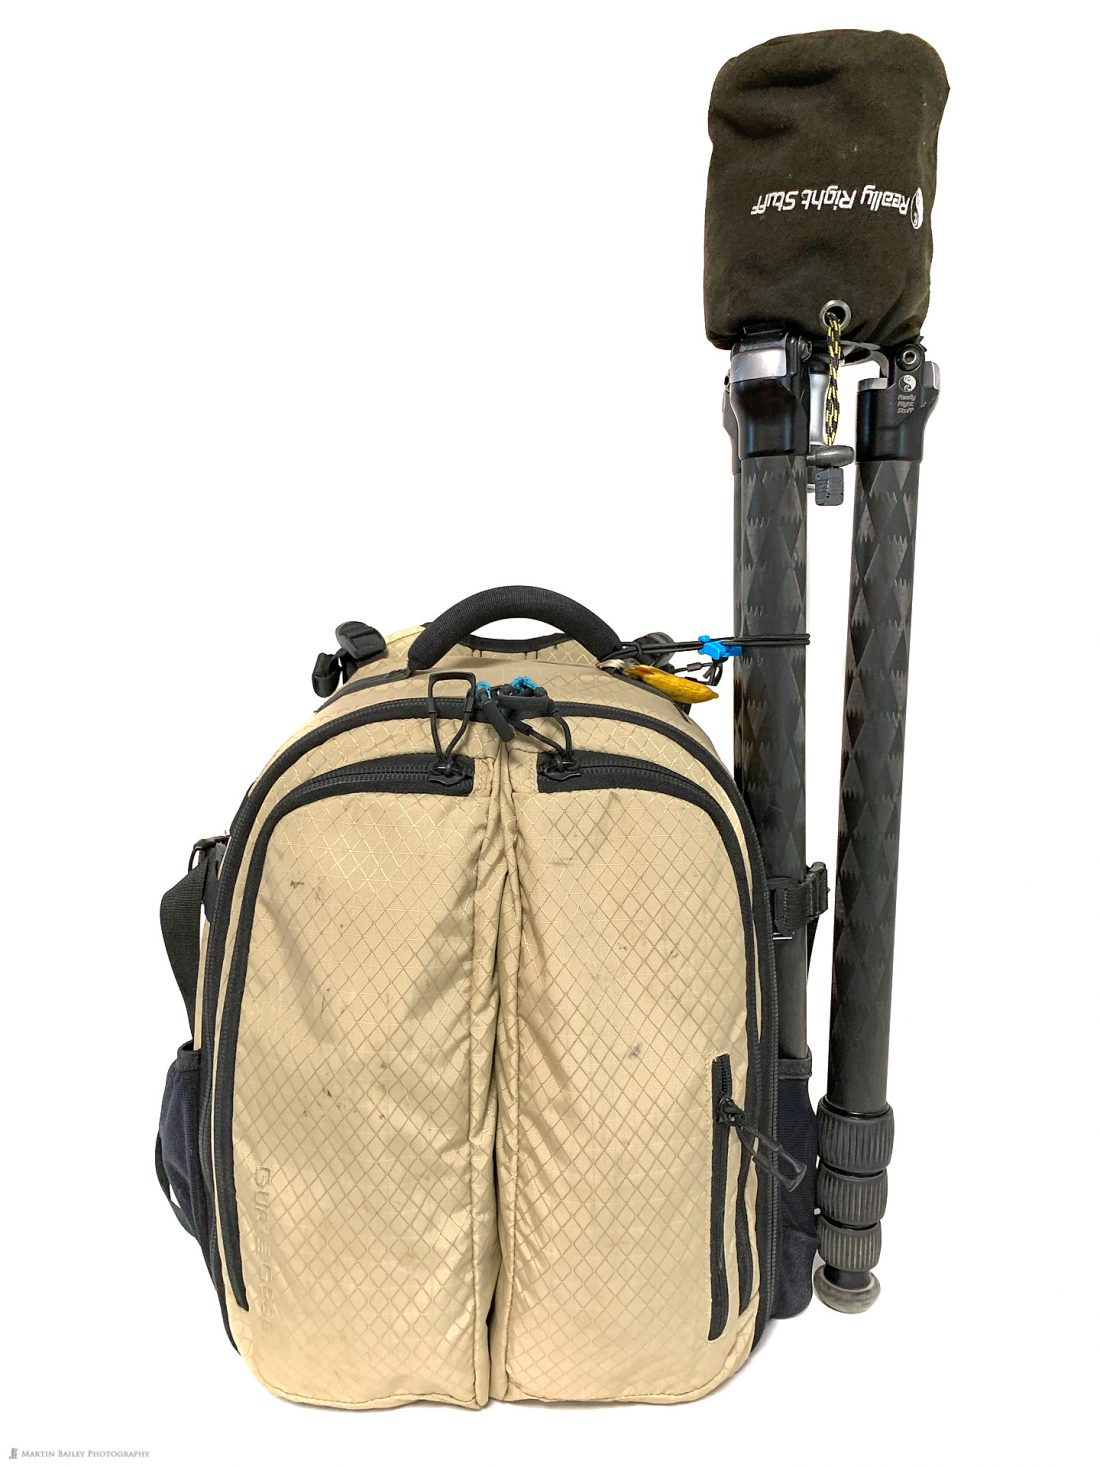 Martin's 18L Gura Gear Bataflae Camera Bag with RRS Tripod